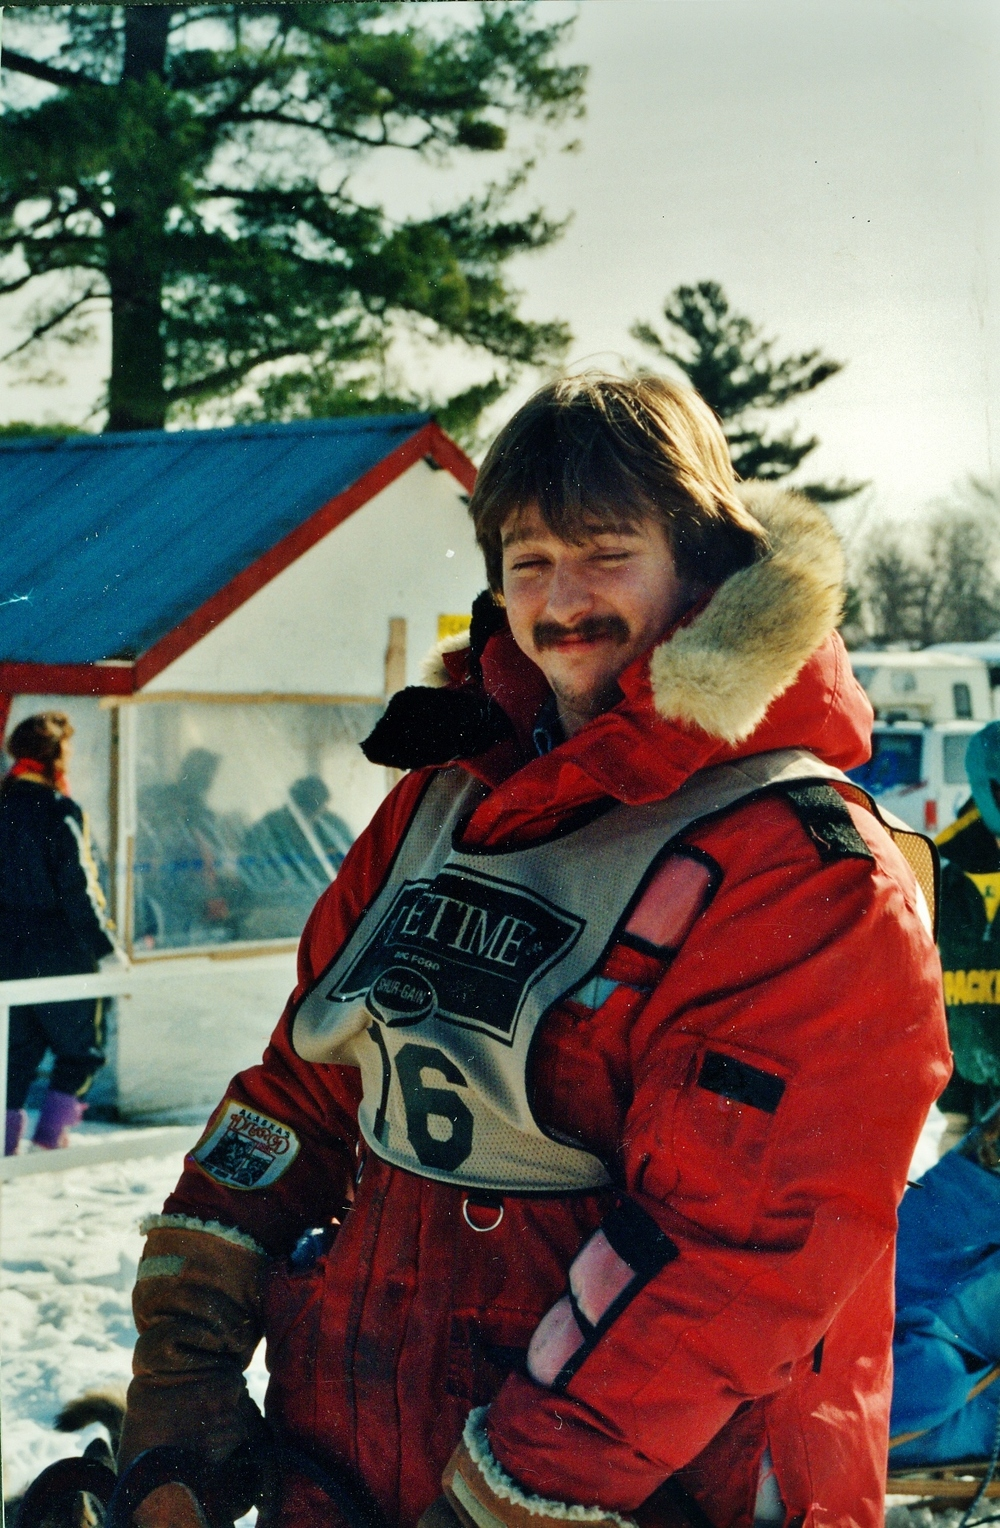 Snofest 1994 Steve Johnson, Campbellford Ont.